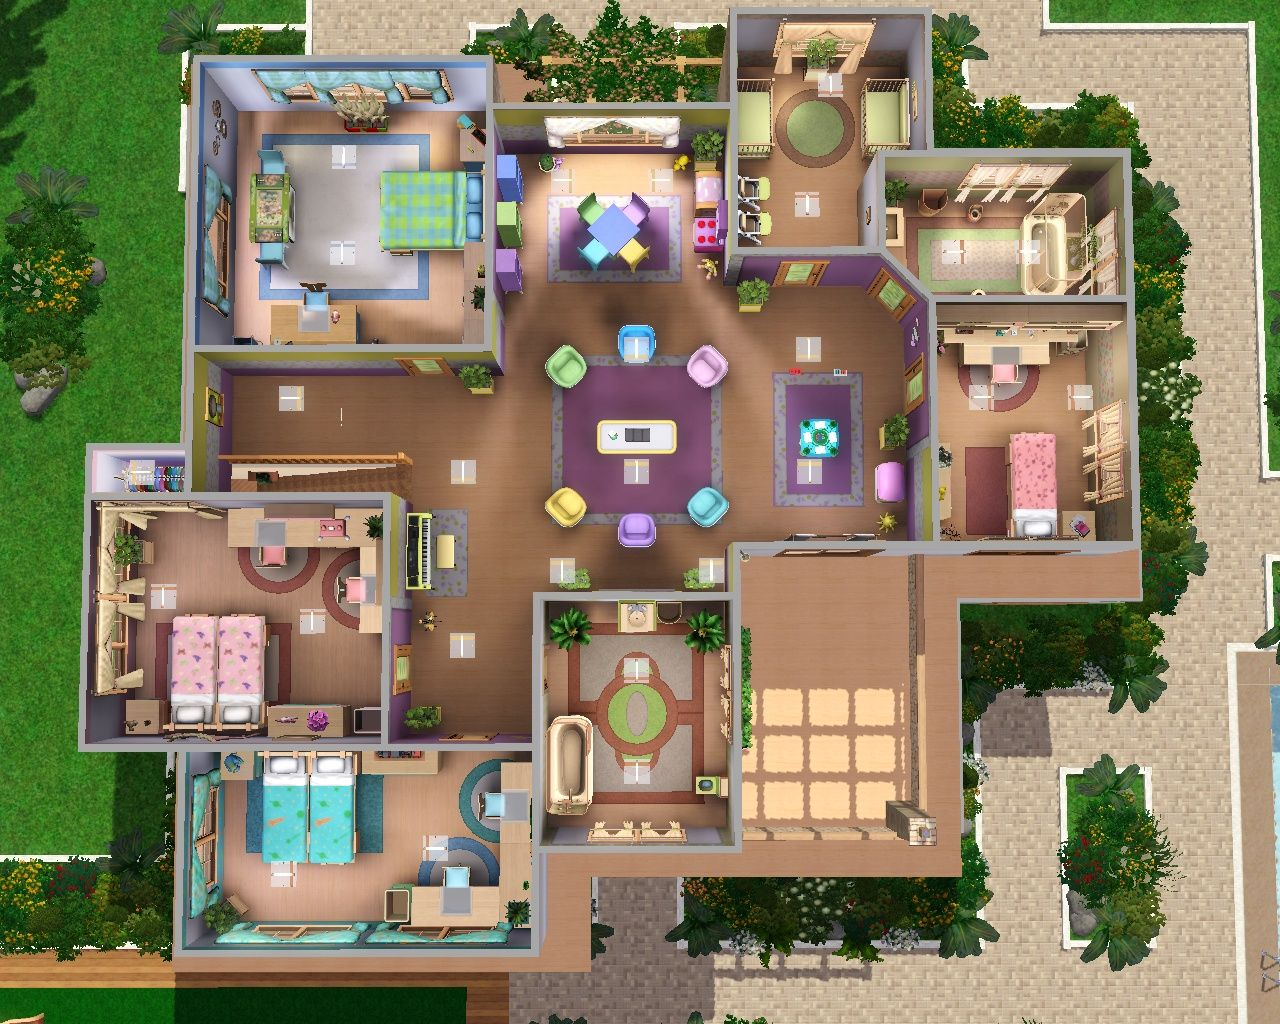 Beau Sims 3 Legacy House Floor Plan   House And Home Design